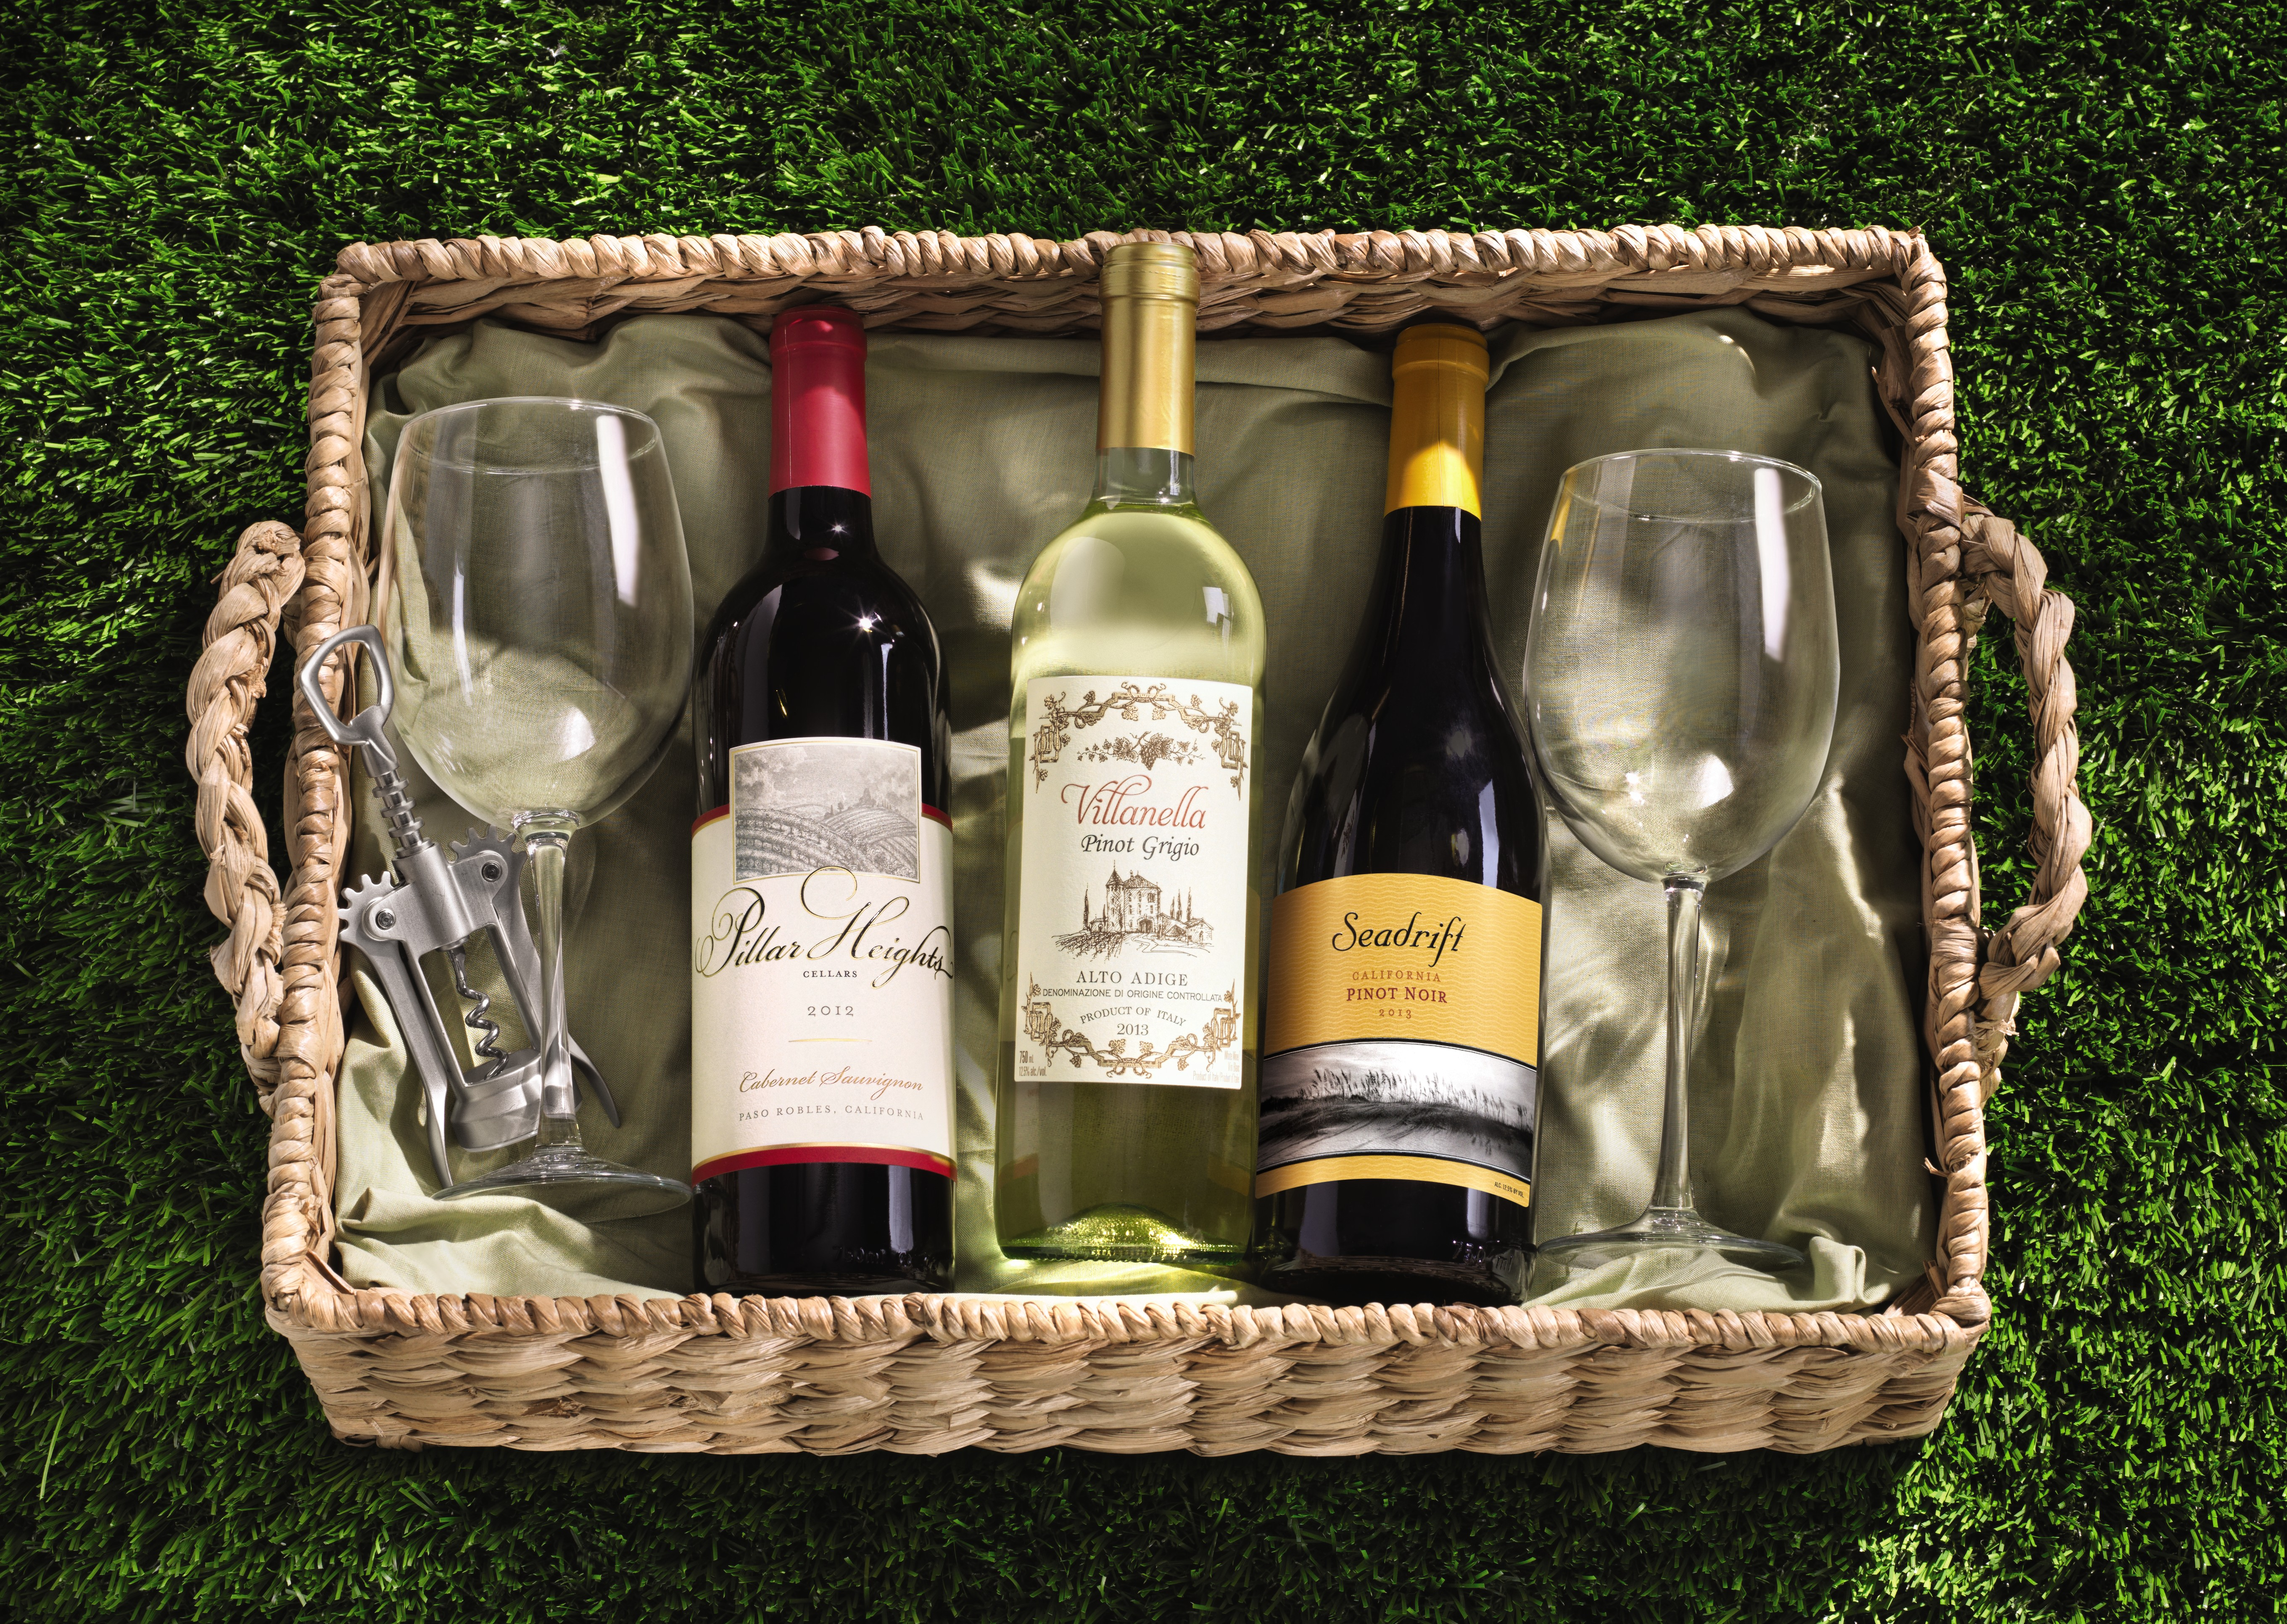 ALDI wine bottles in a picnic basket with glasses and a cork opener